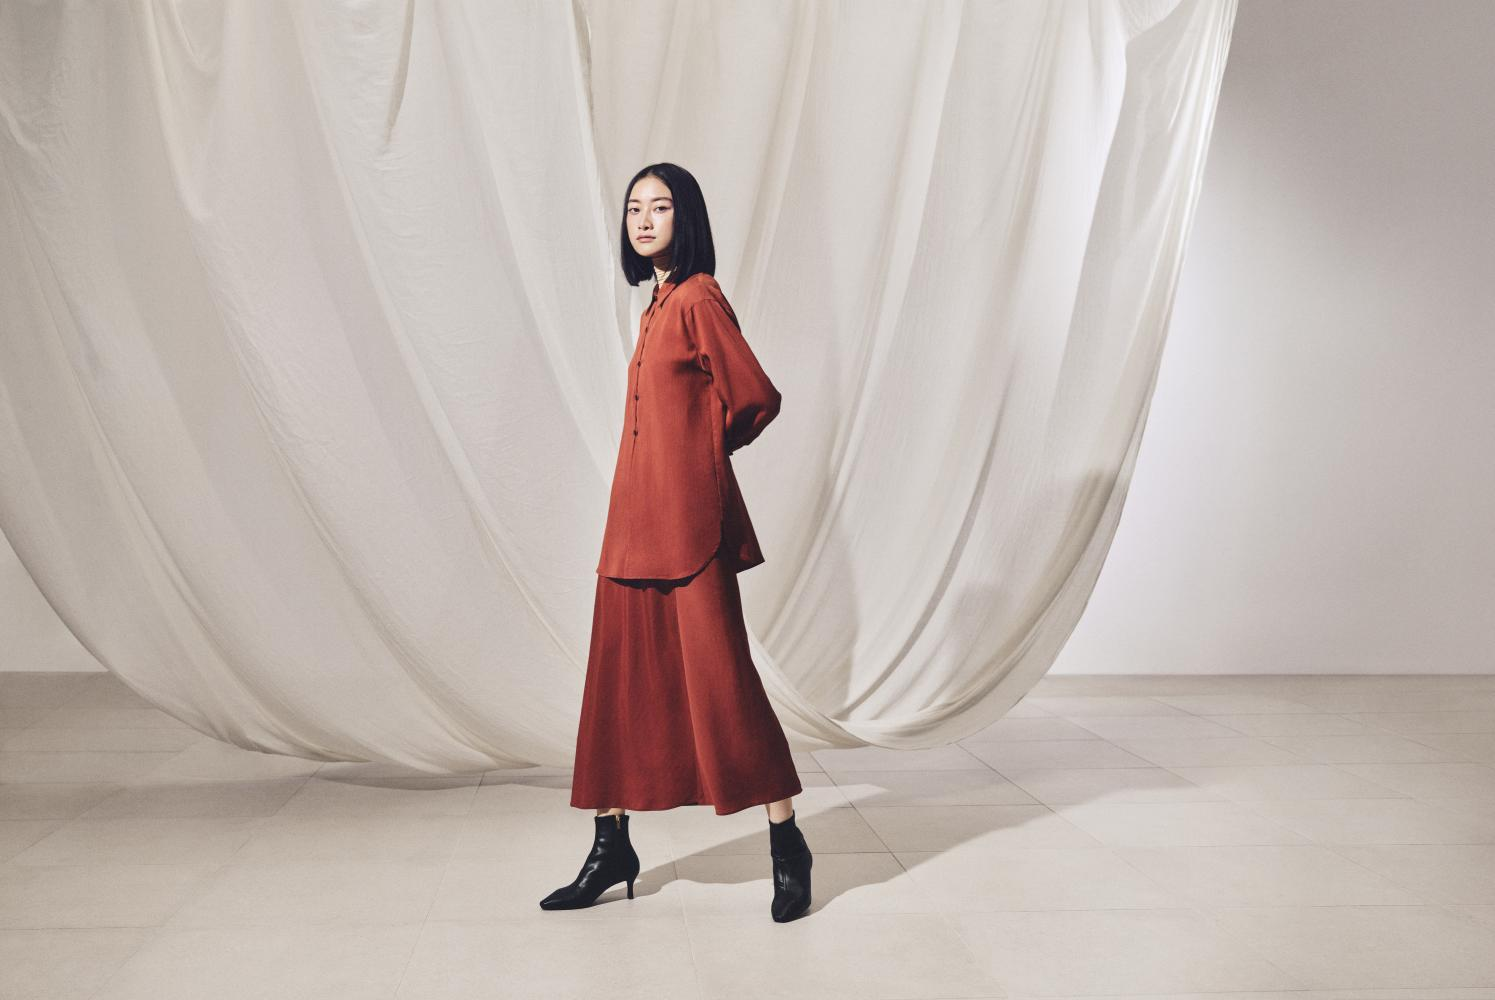 Uniqlo's new collection lets you feel your body